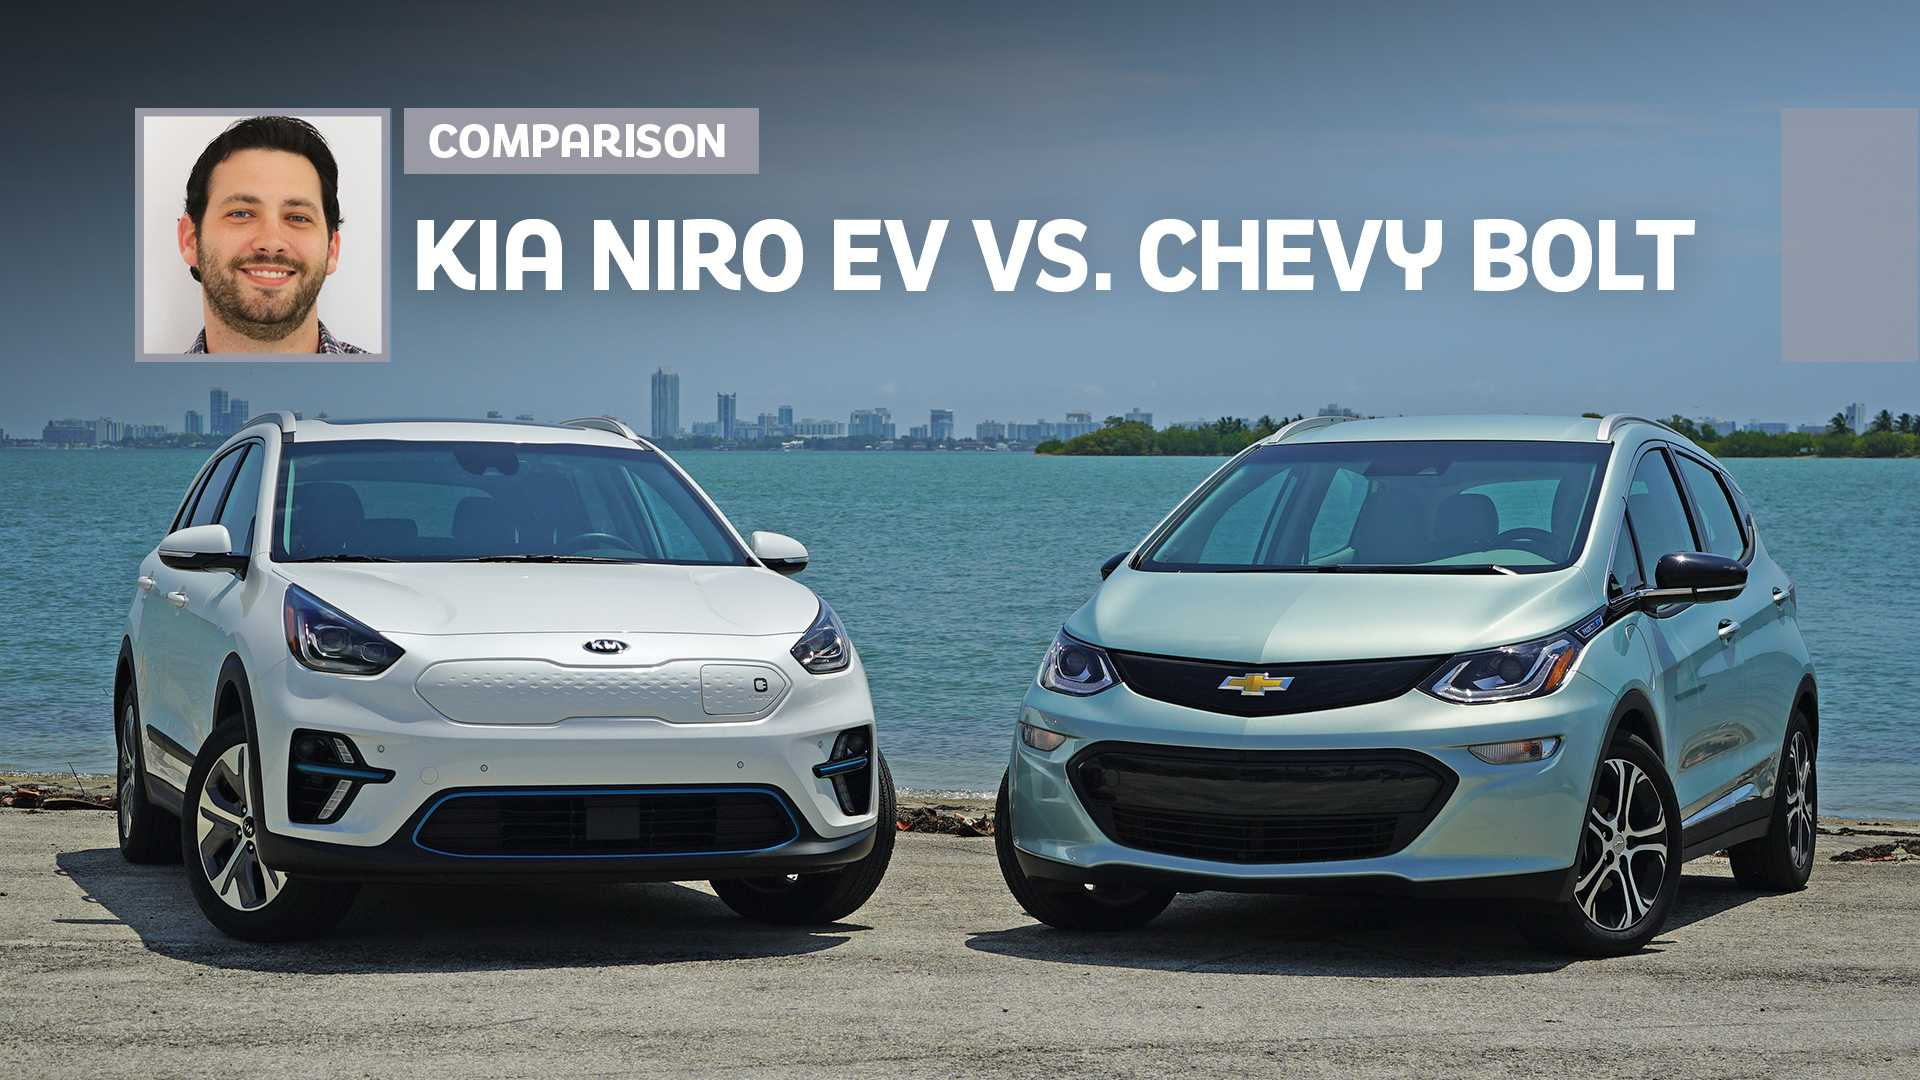 2019 Chevrolet Bolt Vs. 2019 Kia Niro EV Comparison: Electric Avenue